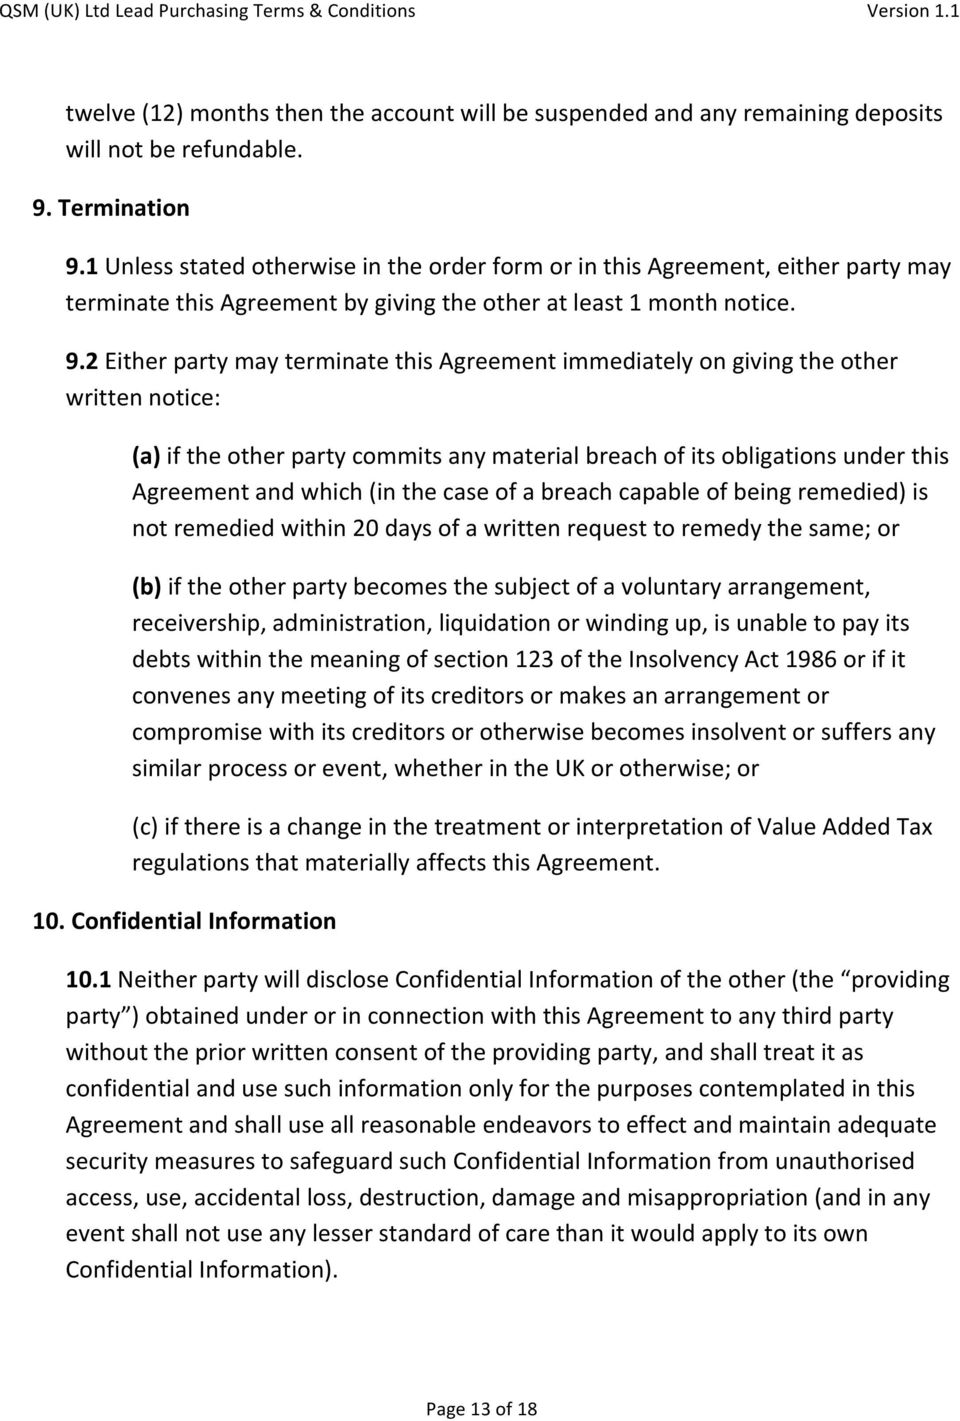 2 Either party may terminate this Agreement immediately on giving the other written notice: (a) if the other party commits any material breach of its obligations under this Agreement and which (in